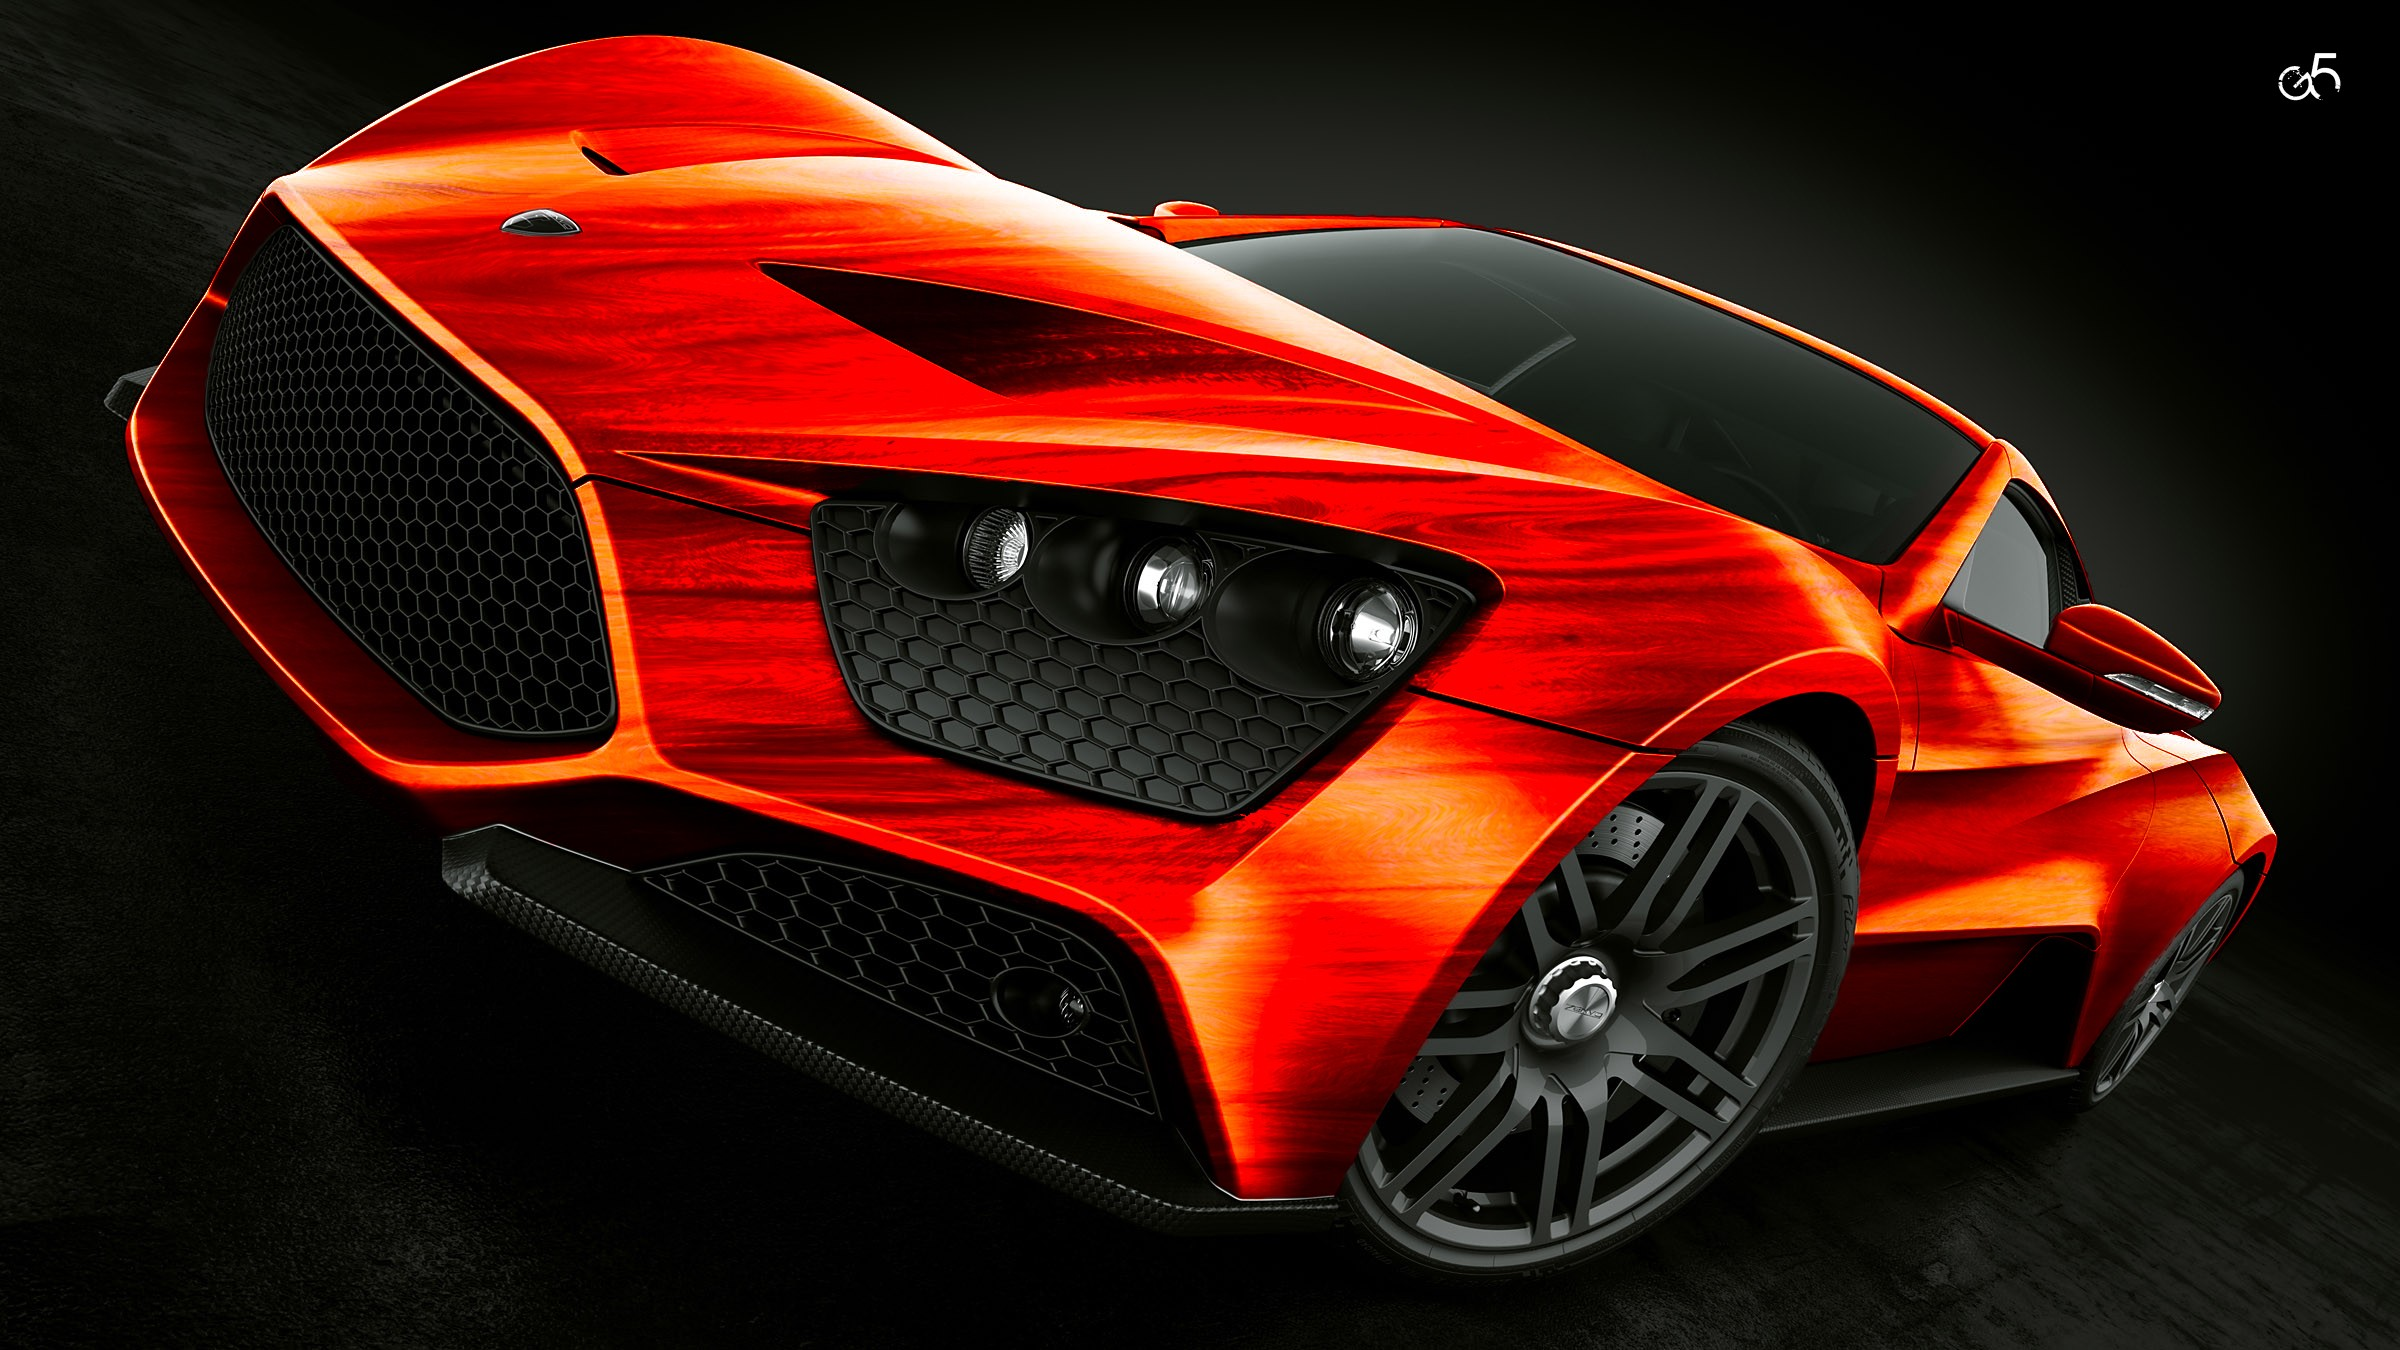 Supra Iphone Wallpaper Zenvo St1 Full Hd Wallpaper And Background 2400x1350